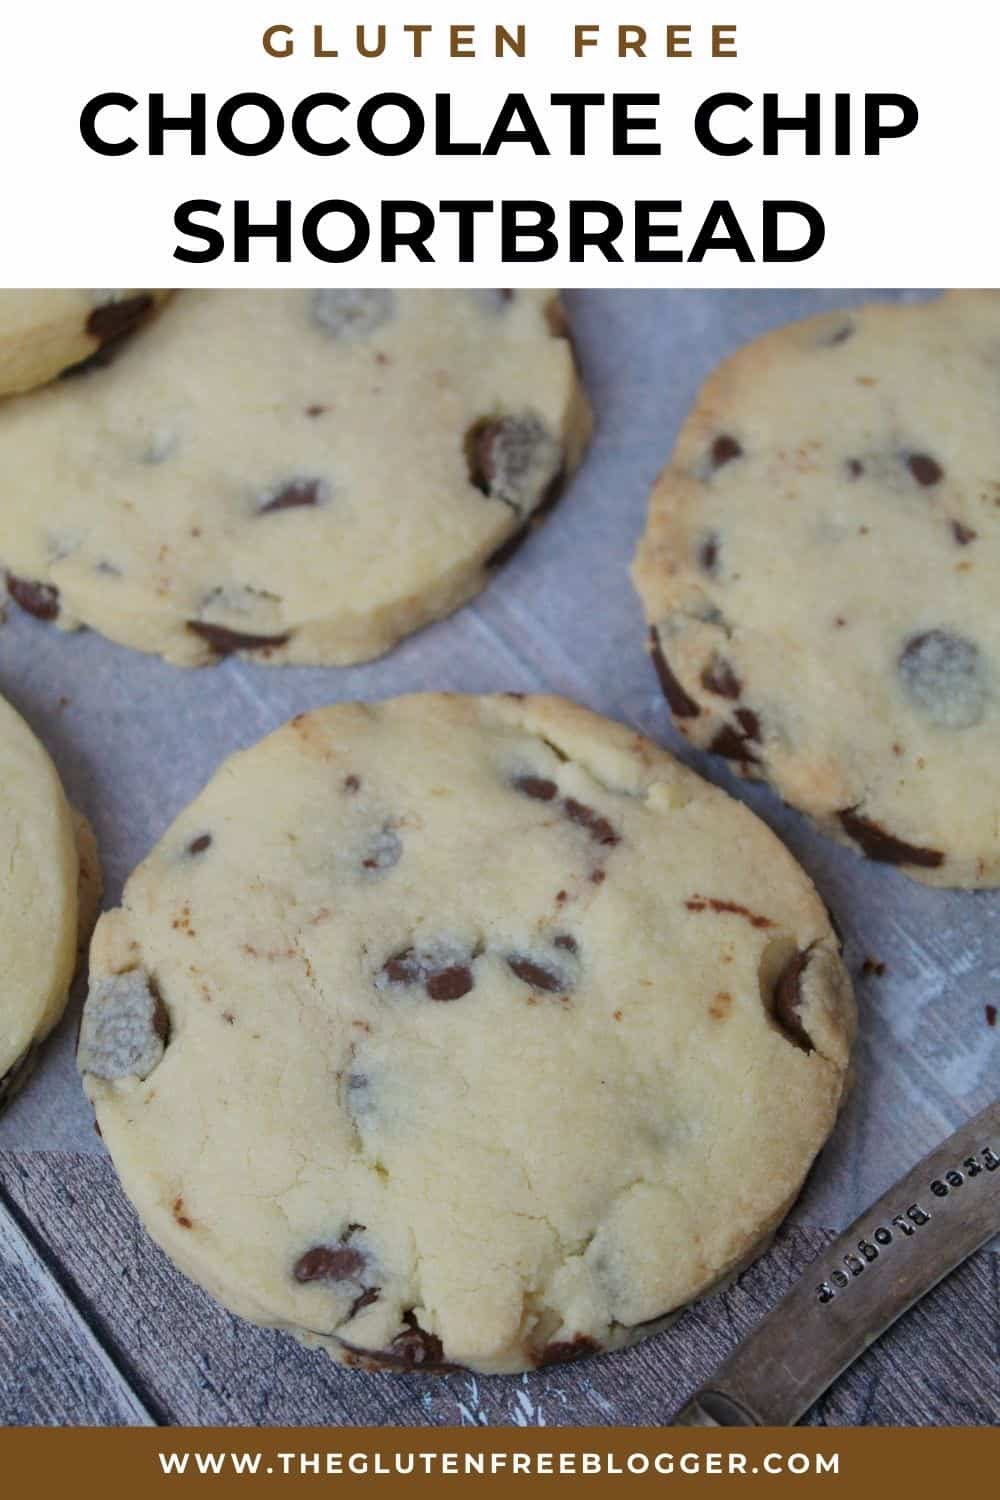 GLUTEN FREE CHOCOLATE CHIP SHORTBREAD COOKIES